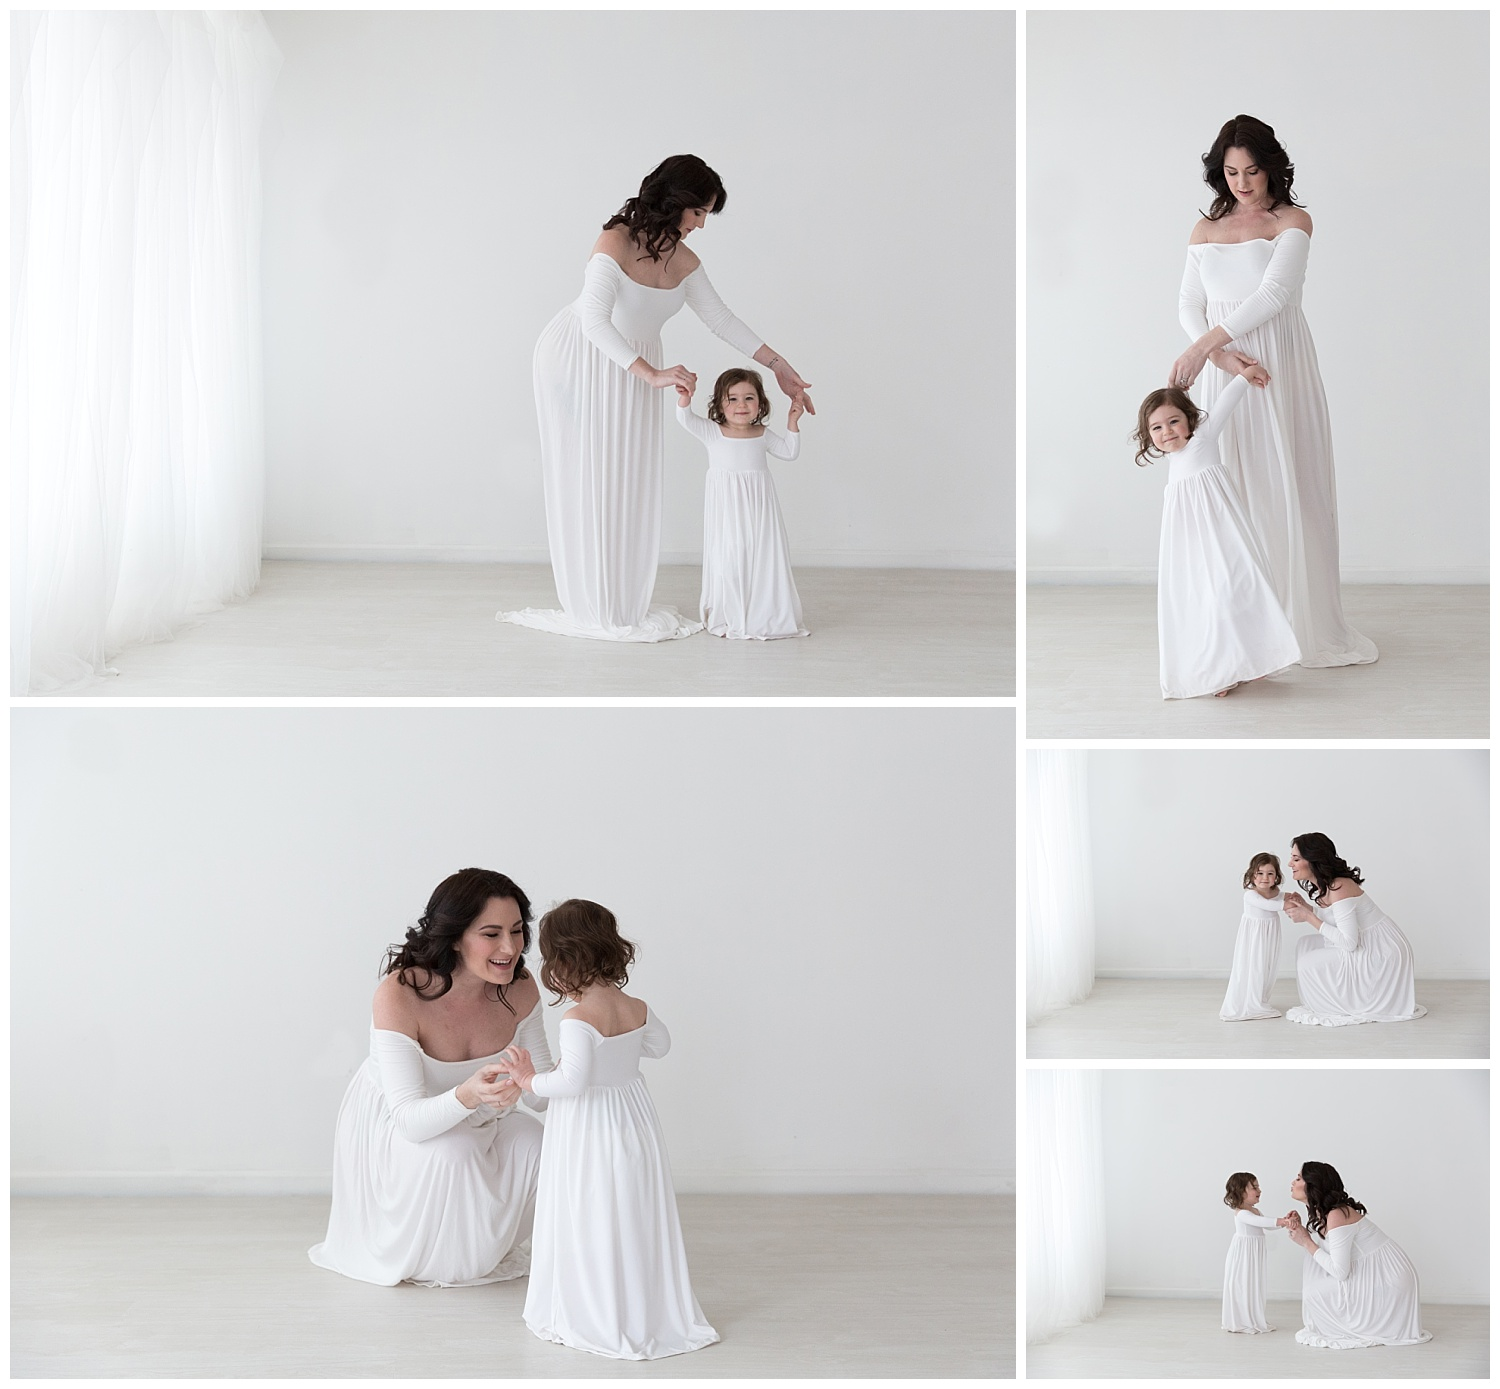 pregnant mom and daughter wearing white and dancing in the white studio in burlington nj for pregnancy photos